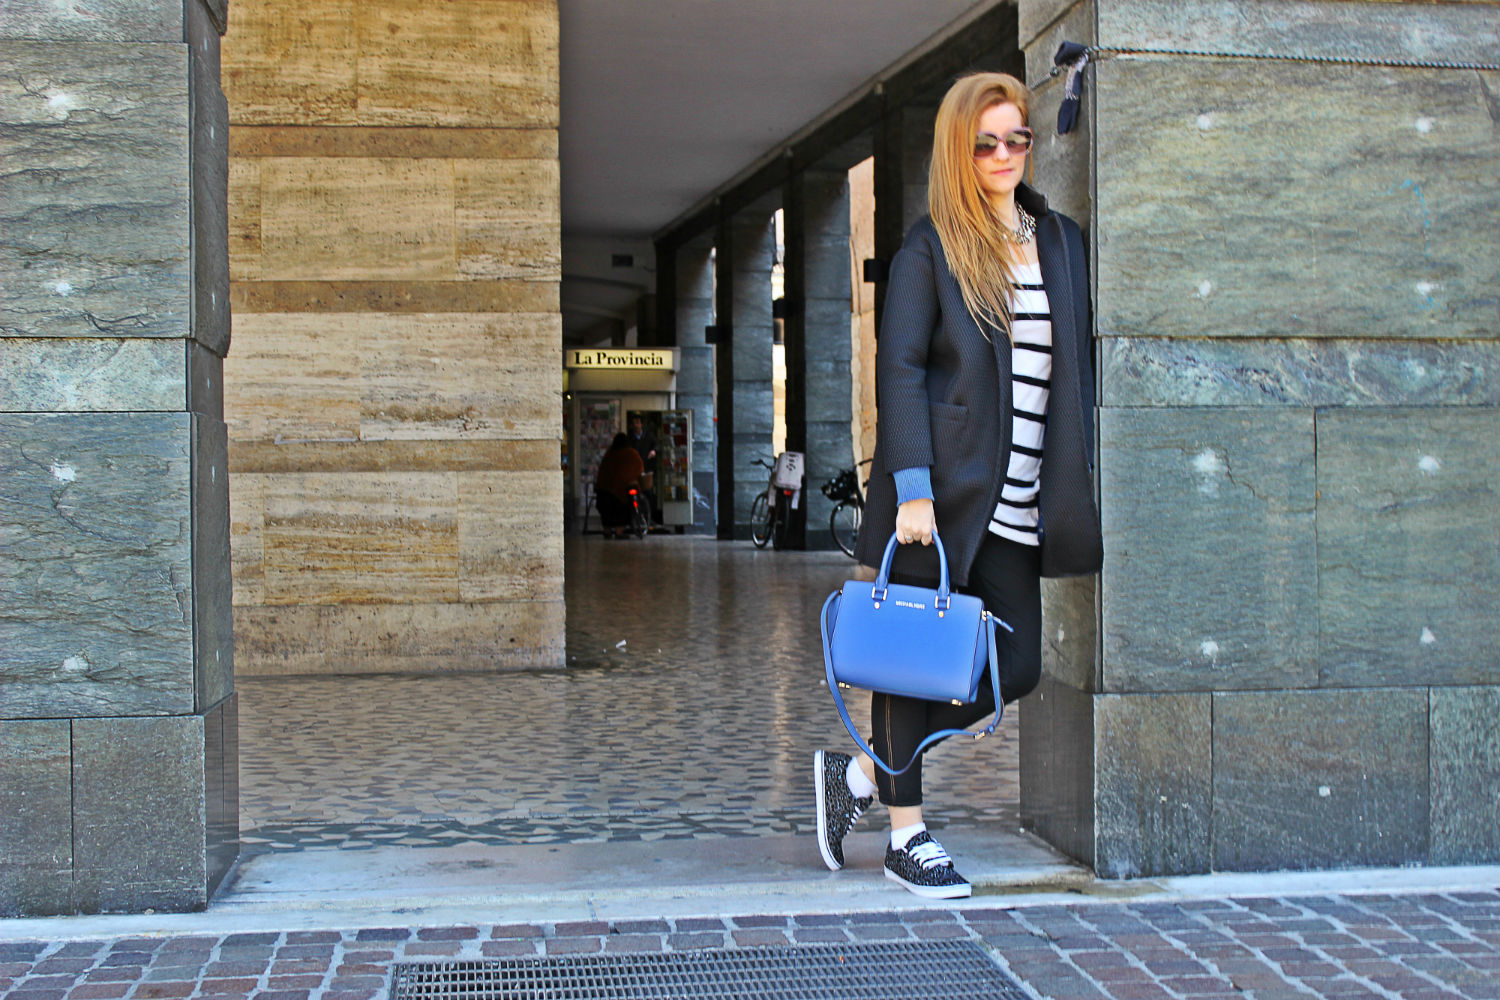 VANS-BLU-ROYAL-BLUMARINE-SUNGLASSES-MICHAELKORS-BAG-SPORTIT-SHOP-ONLINE7